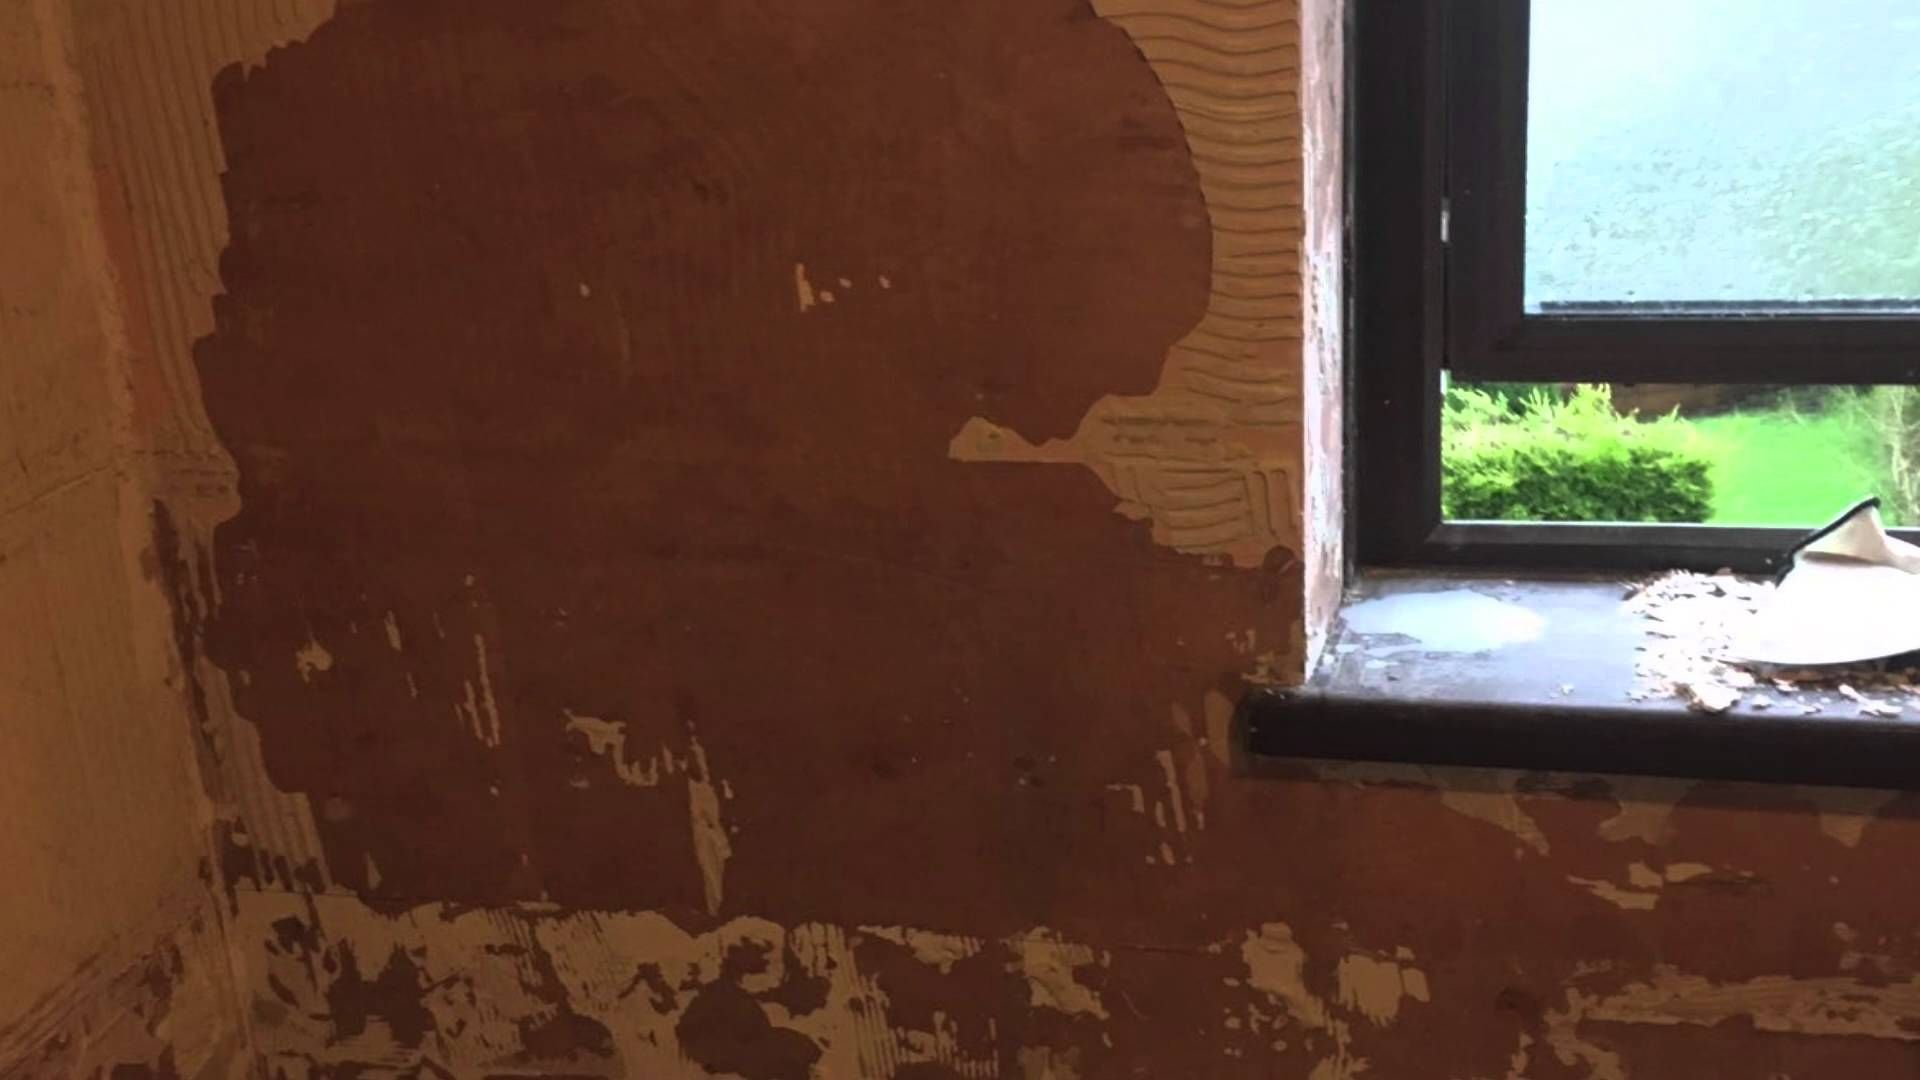 PLASTERER IN BEDWAS CAERPHILLY SOUTH WALES - PLASTERING IN BEDWAS CAERPH...